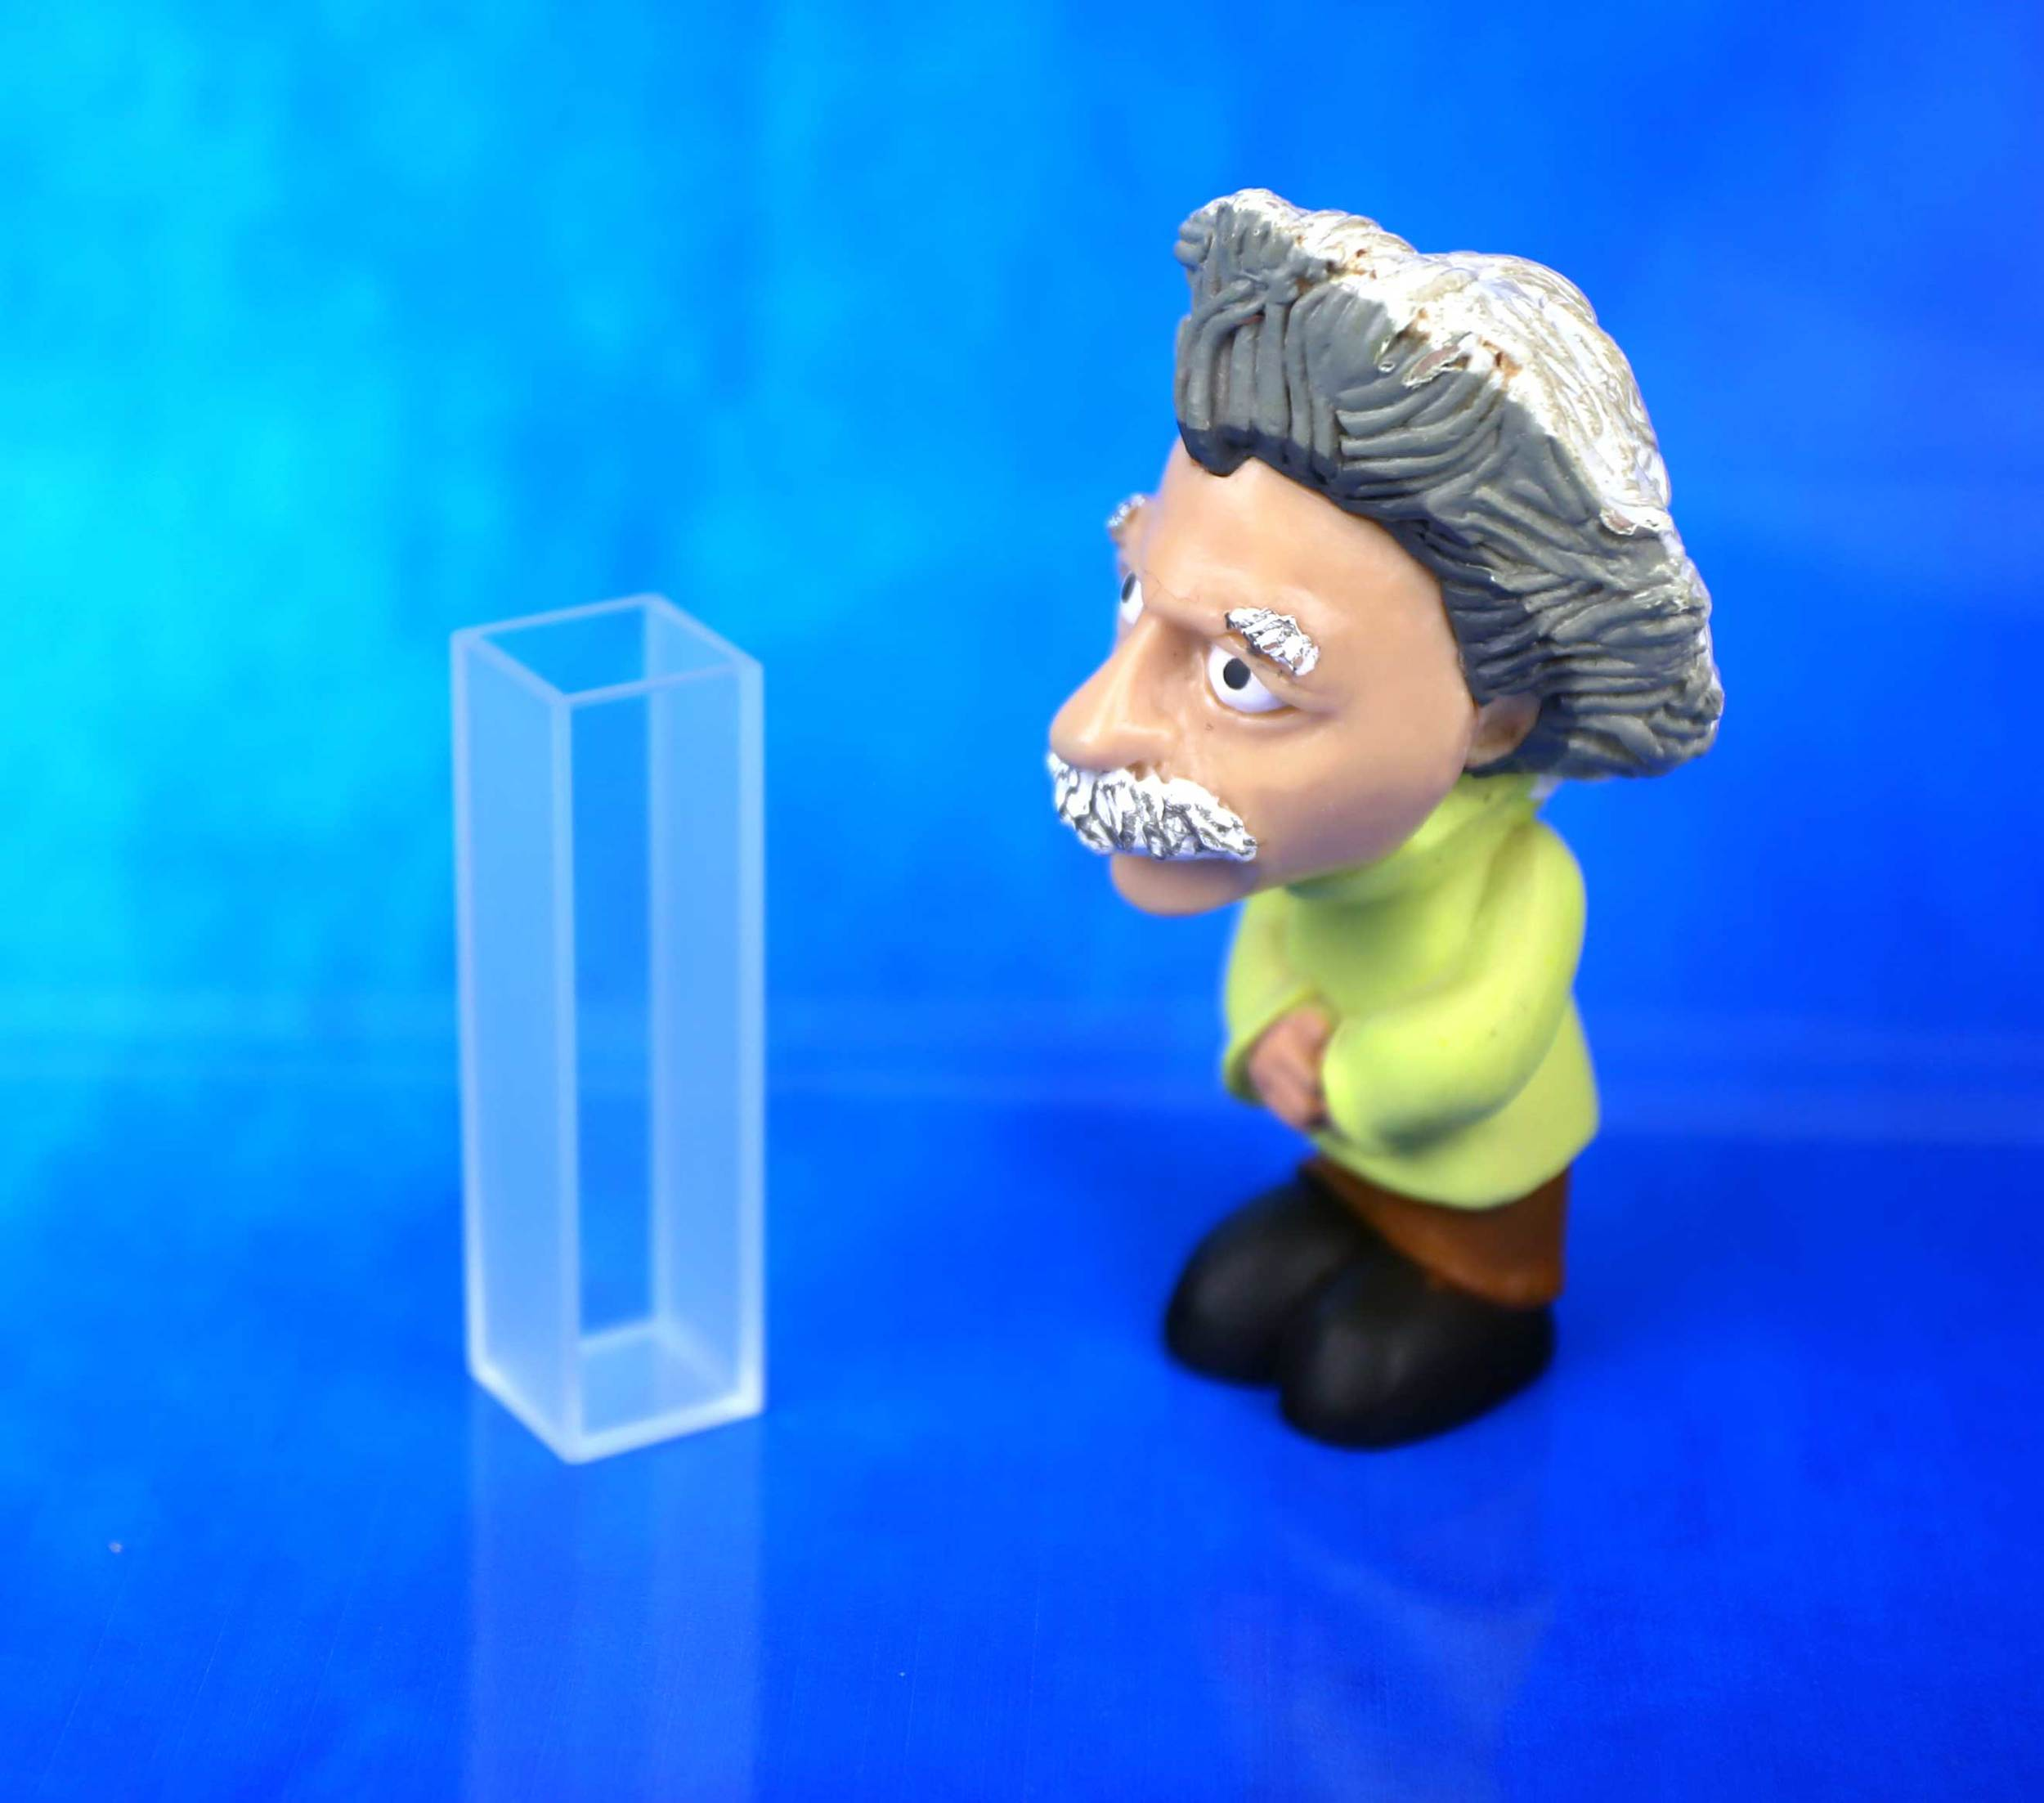 Einstein admiring our Type 1UV10 Cuvette